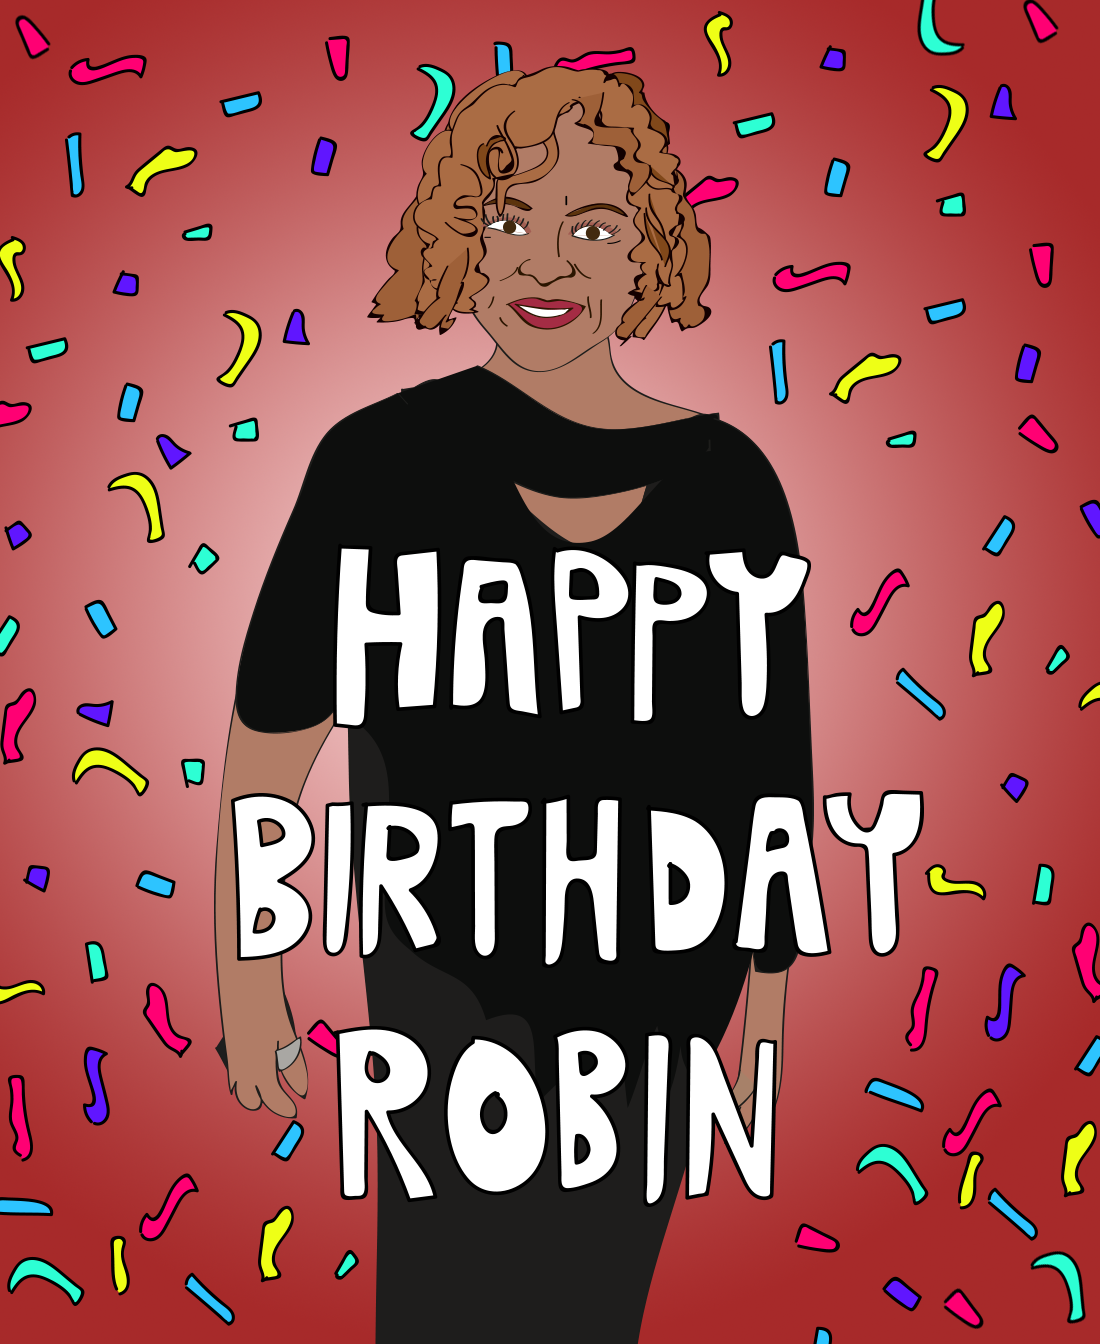 Robin Quivers birthday illustration, Drawn for You